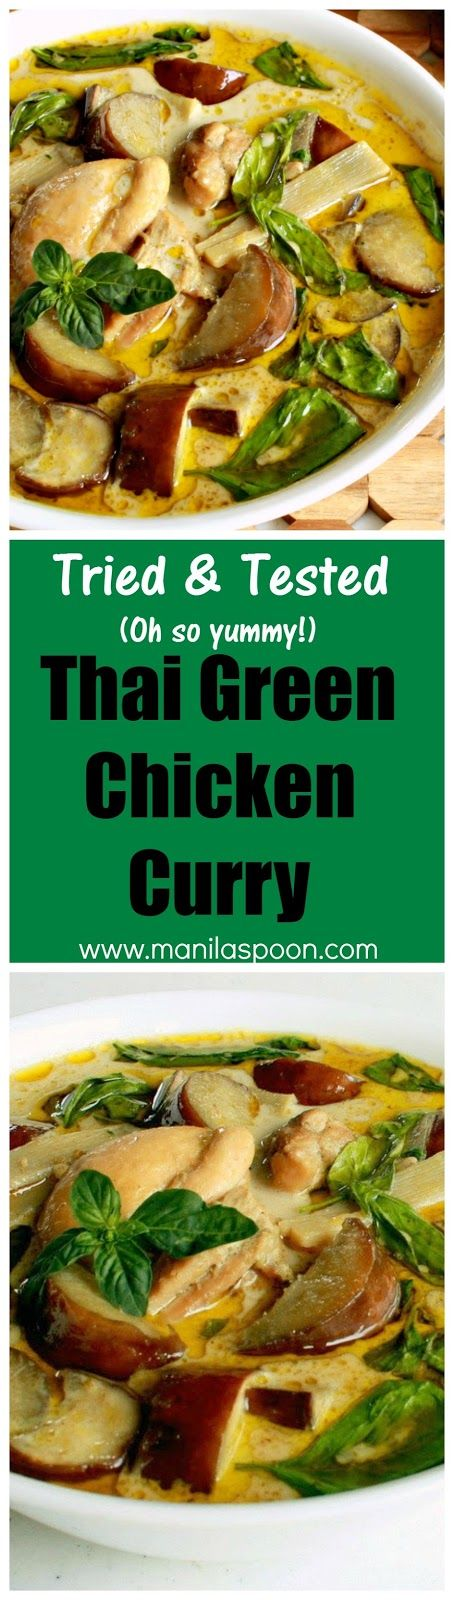 When you crave a delicious curry this one is sure to please - sweet, salty, spicy and creamy - Thai Green Chicken Curry - oh so yummy!